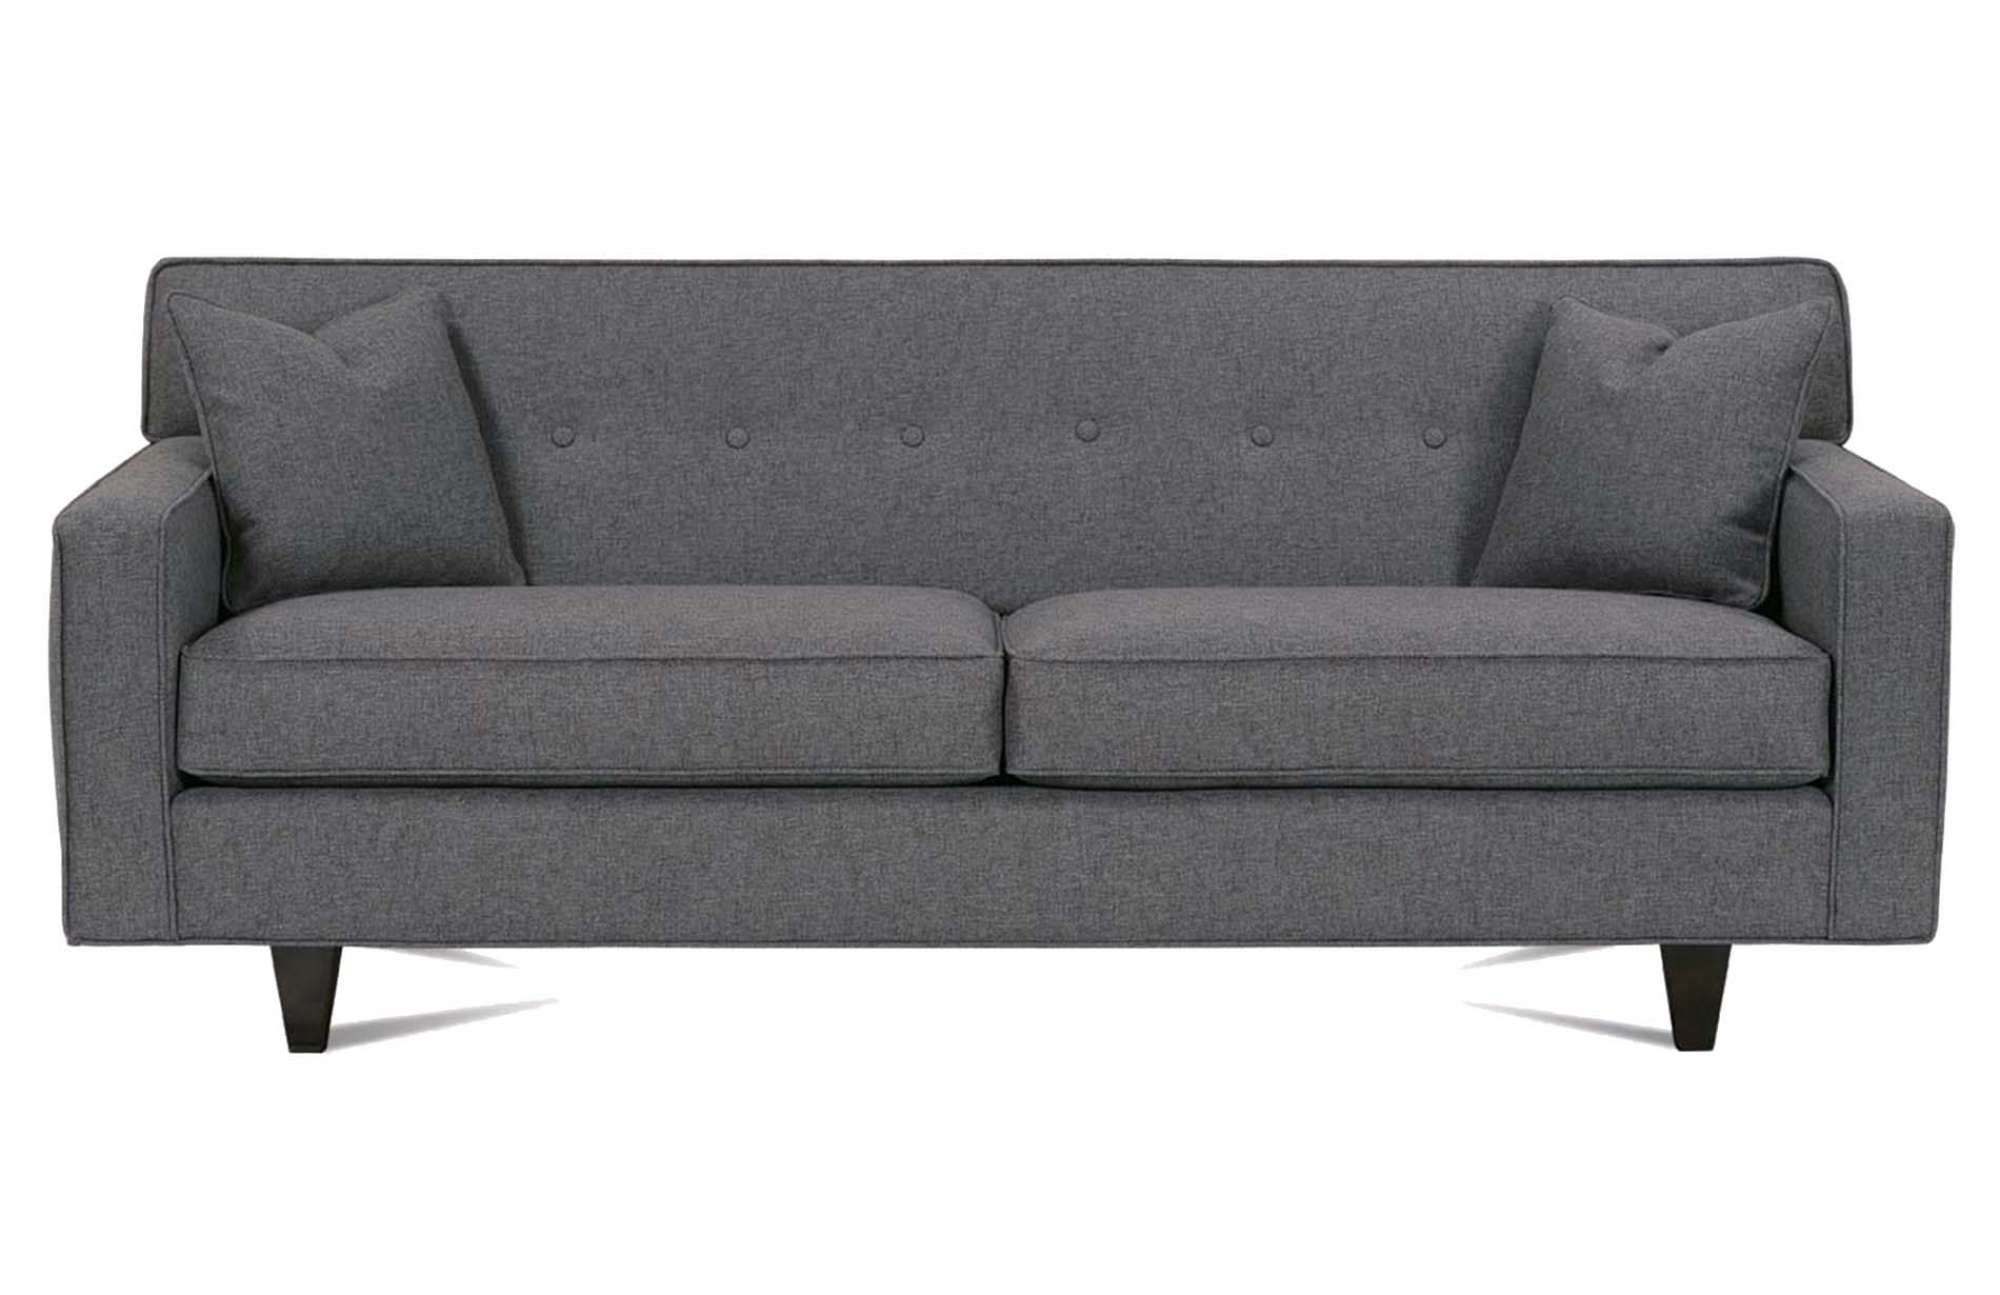 The Dorset Queen Sleeper Is A Modern Luxury Sofa Bed Design That Places An Emphasis On